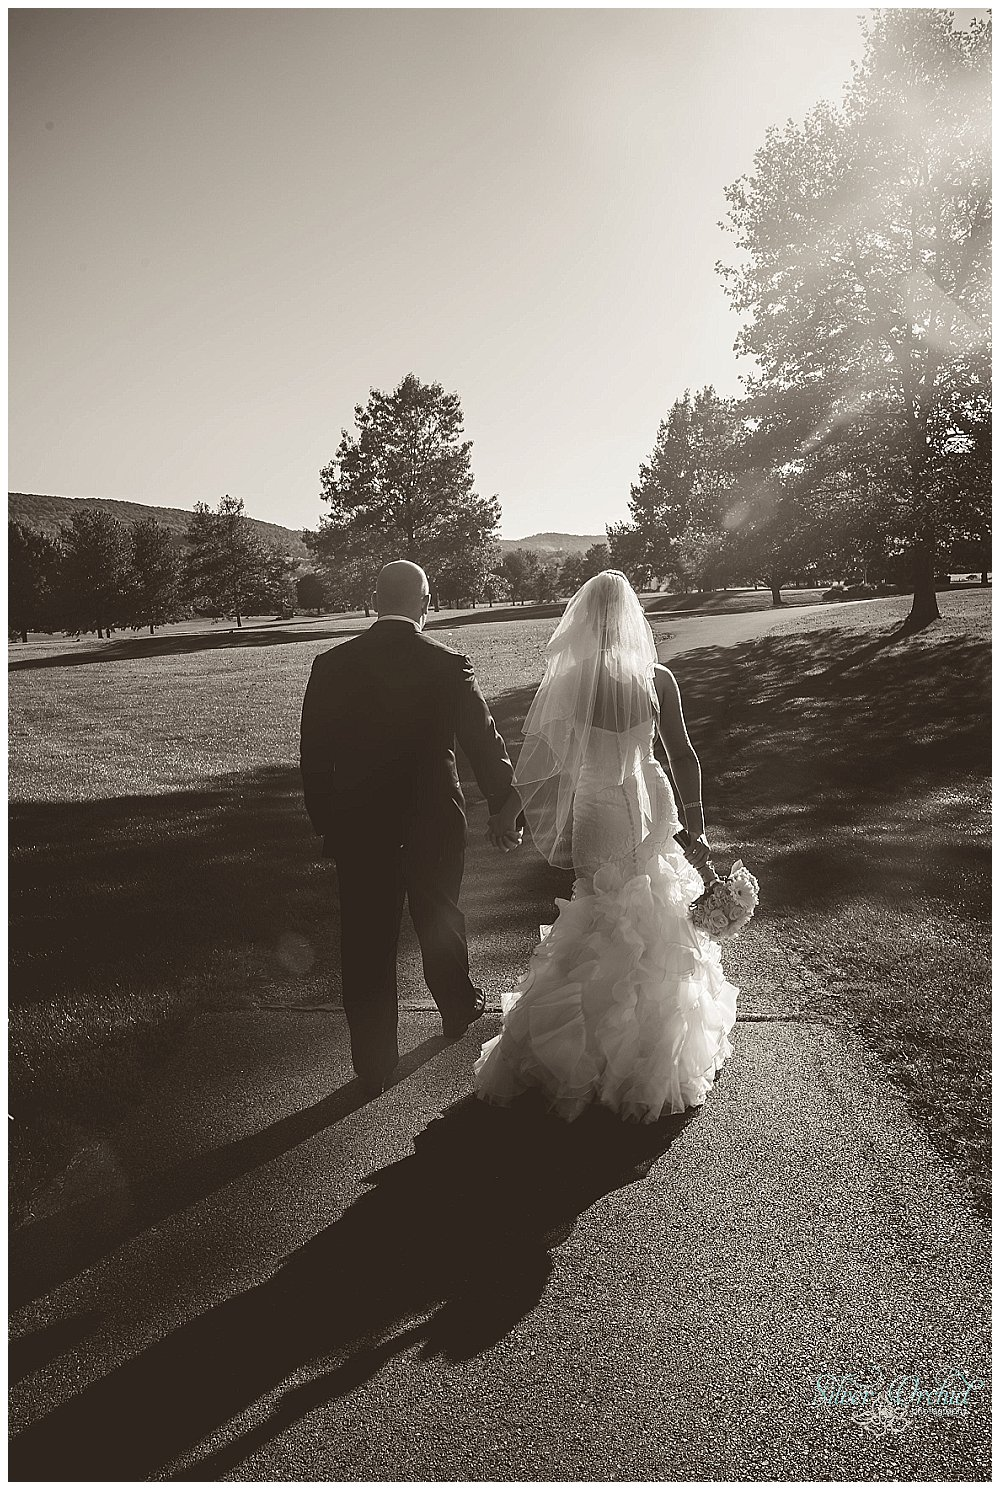 ©Silver Orchid Photography_wedding photography_CantandoBrooksideMacungie_silverorchidphotography.com_0096.jpg